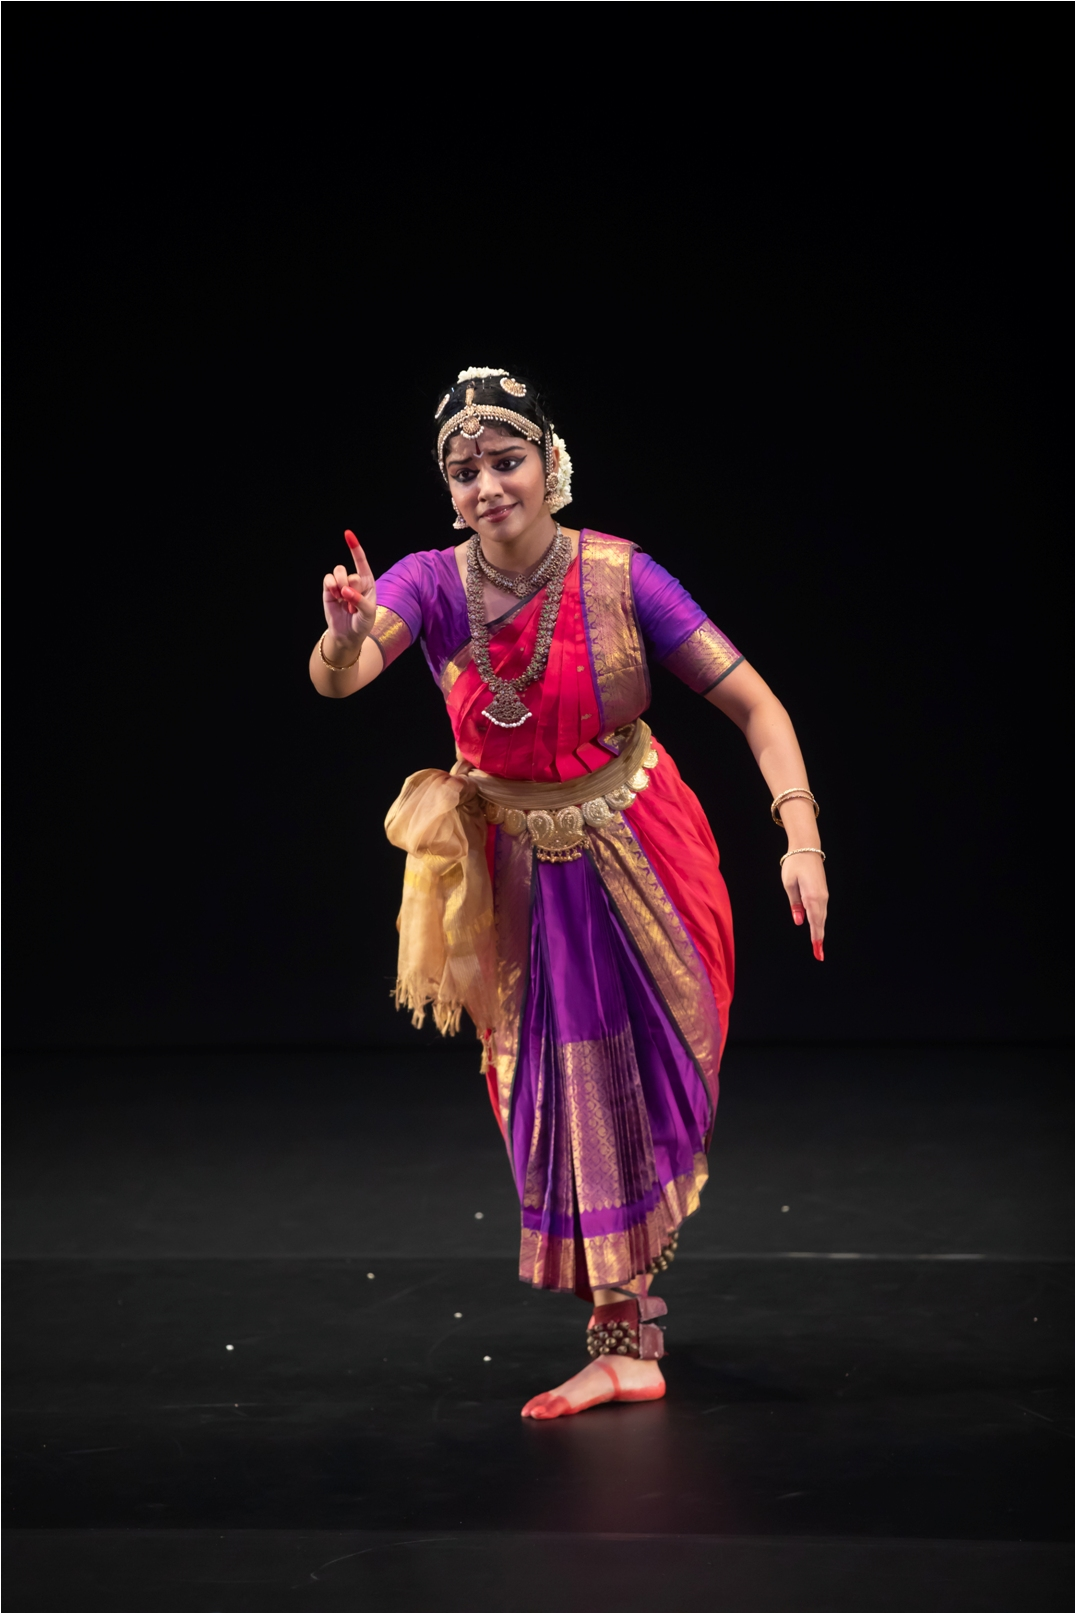 Preethi Devarajan started learning bharatanatyam at the age of six at SIFAS. Photo courtesy: Esplanade